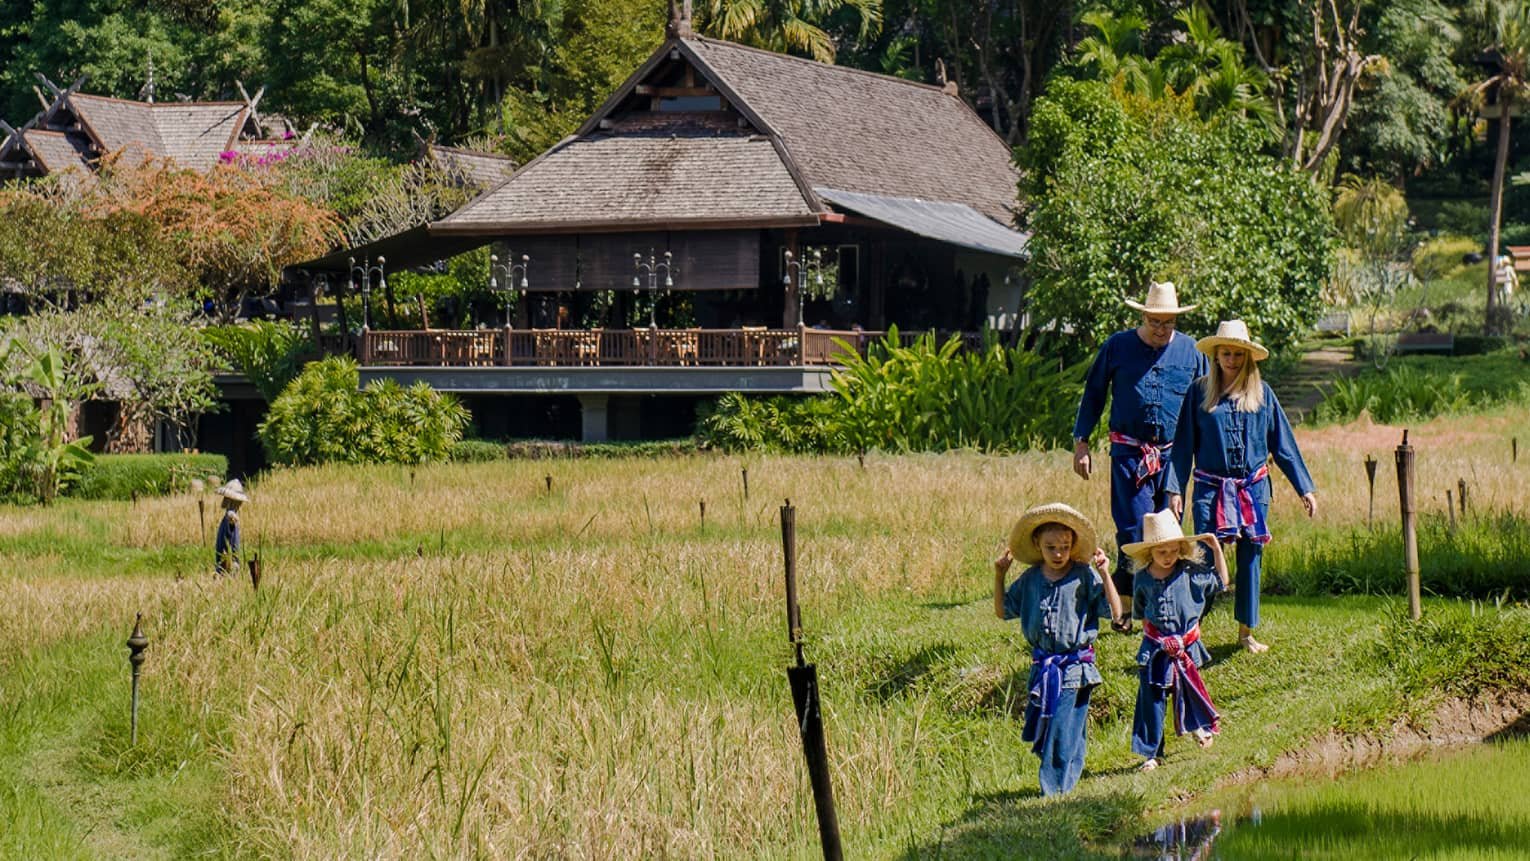 Couple and two young children wearing traditional Thai farmer's outfits walk through rice field